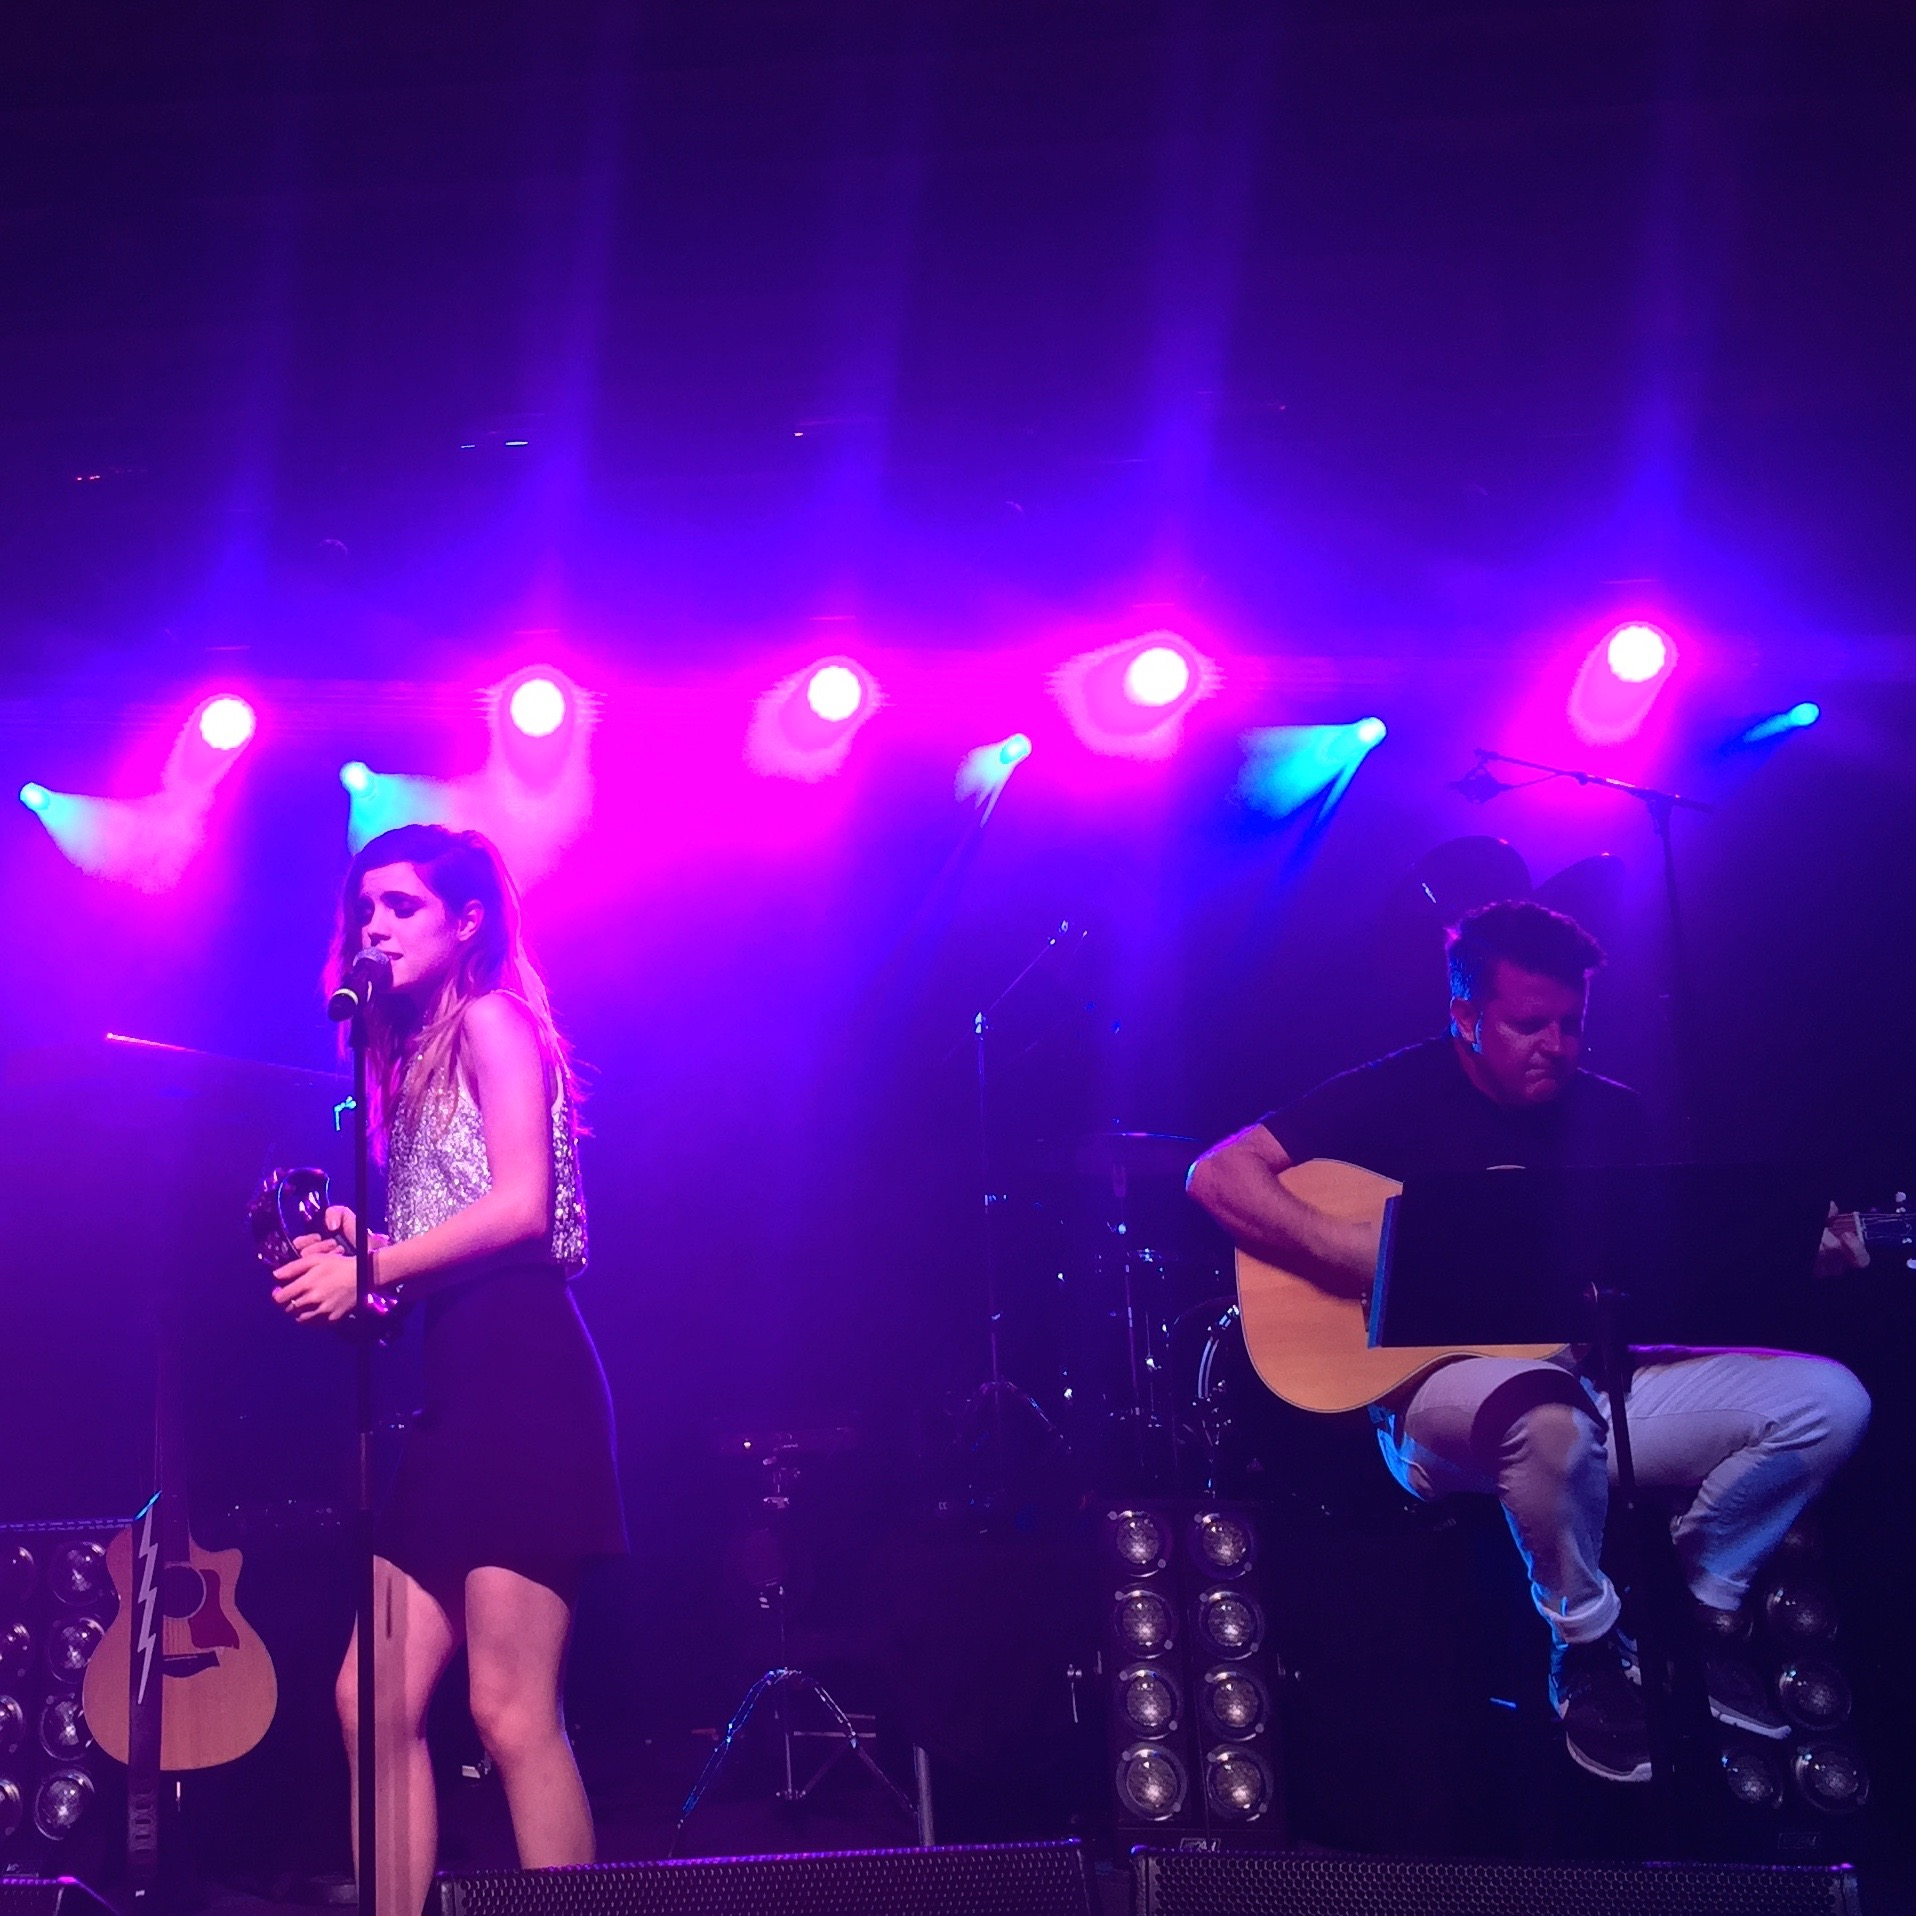 Sydney Sierota of Echosmith performing an acoustic set at the Palmer House during Hilton@Play.